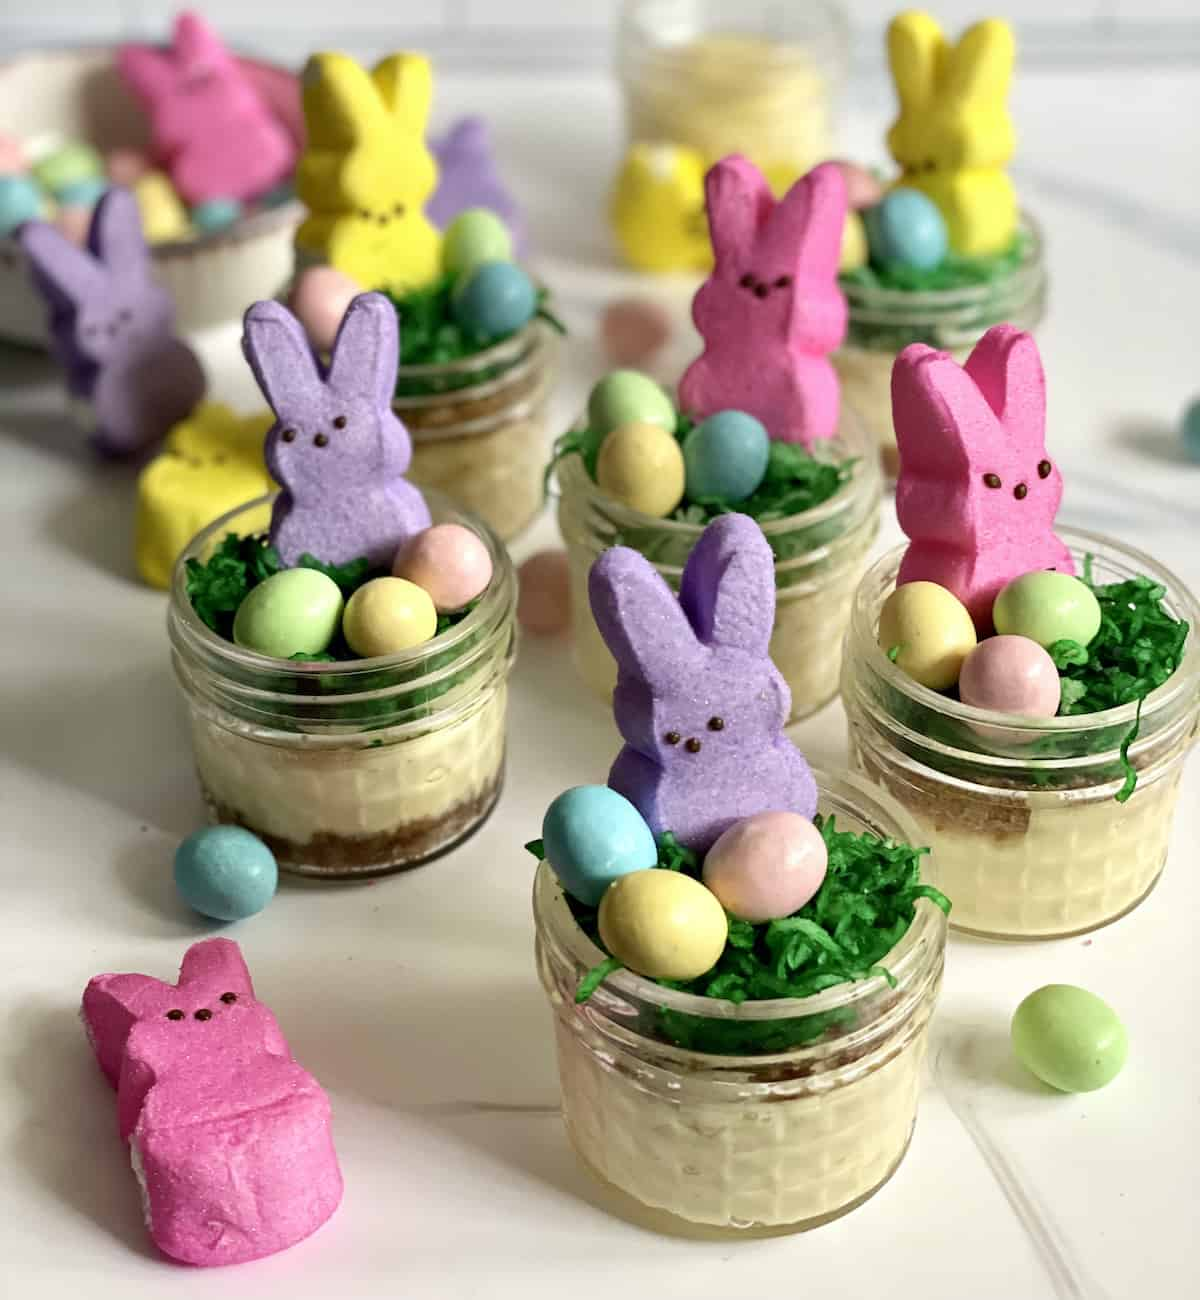 mini Easter cheesecakes in jars made in the Instant Pot